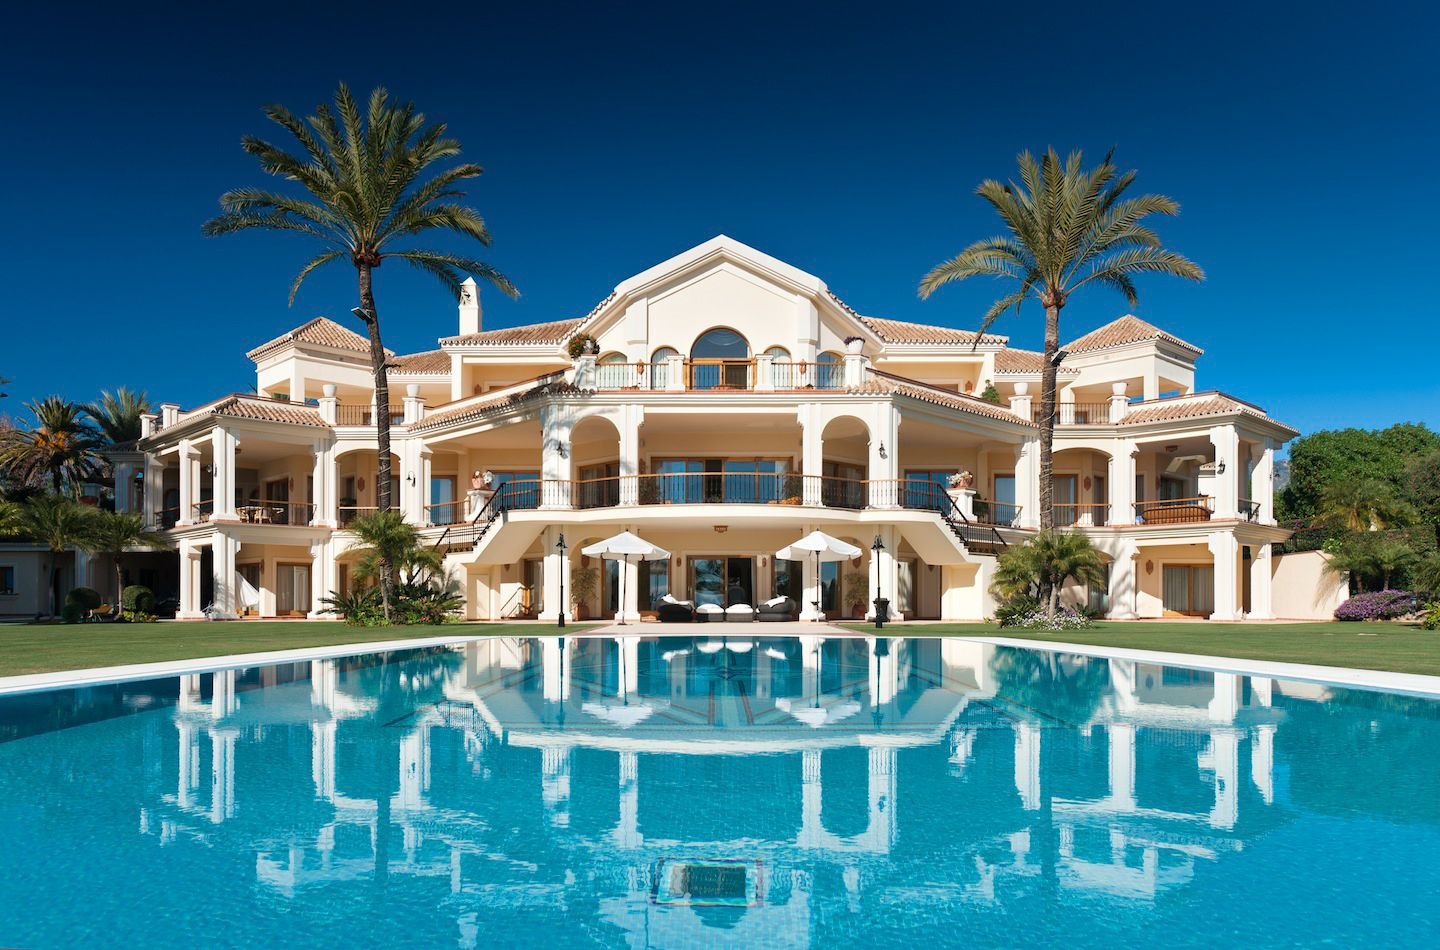 Villa velazquez golden mile marbella cilo marbella for Hotel luxe france